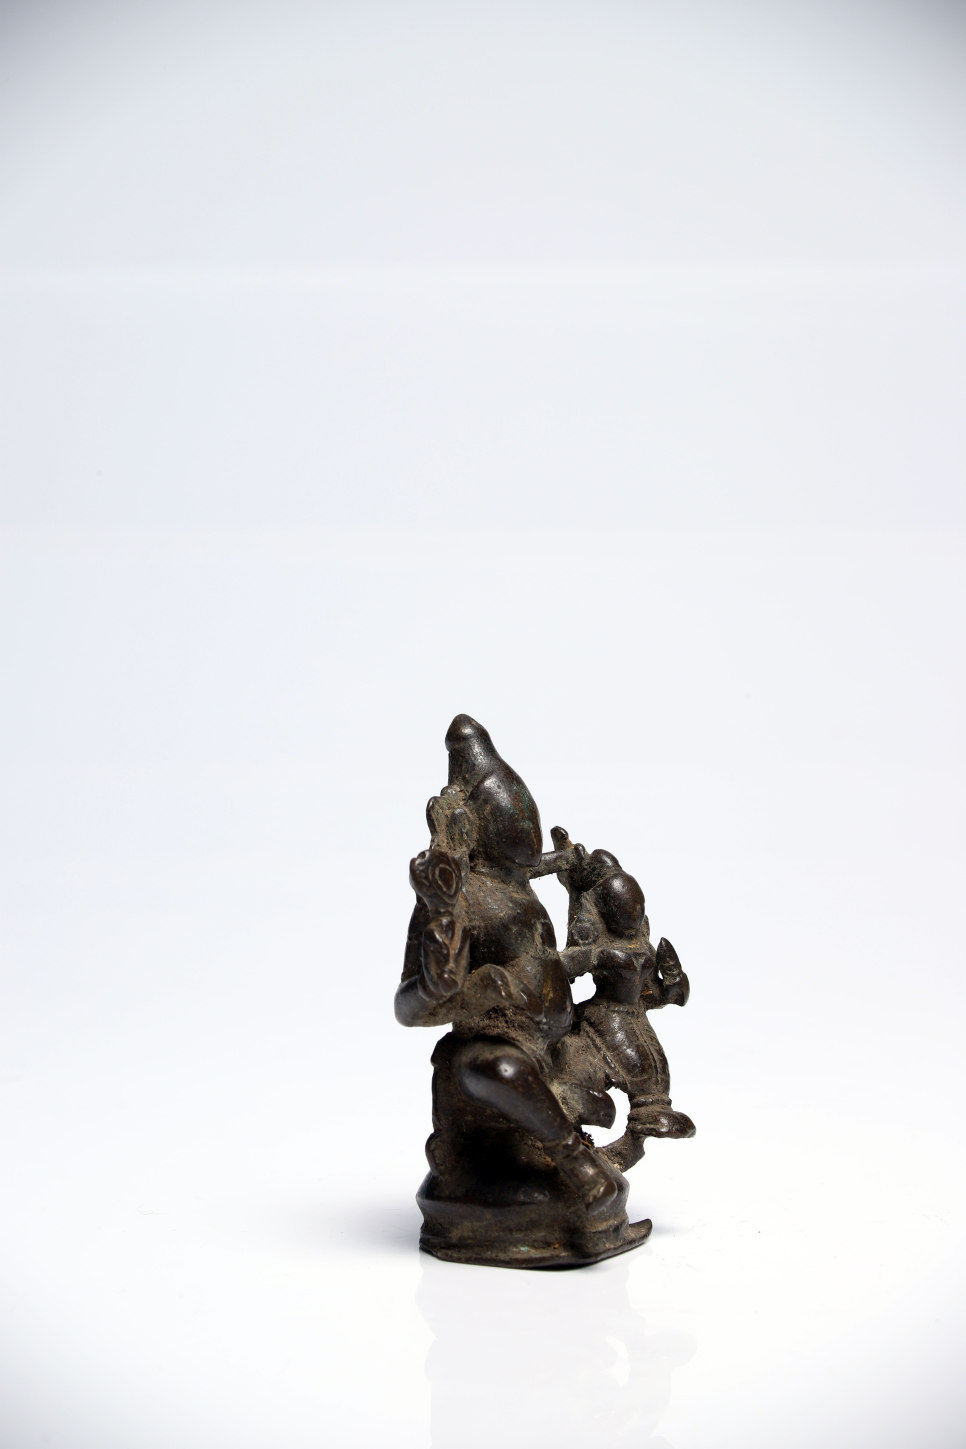 Lot 39 - Shiva & ParvatiBronzeIndien14th ctH: 8 cmShiva with his wife and consort Parvati seated on his